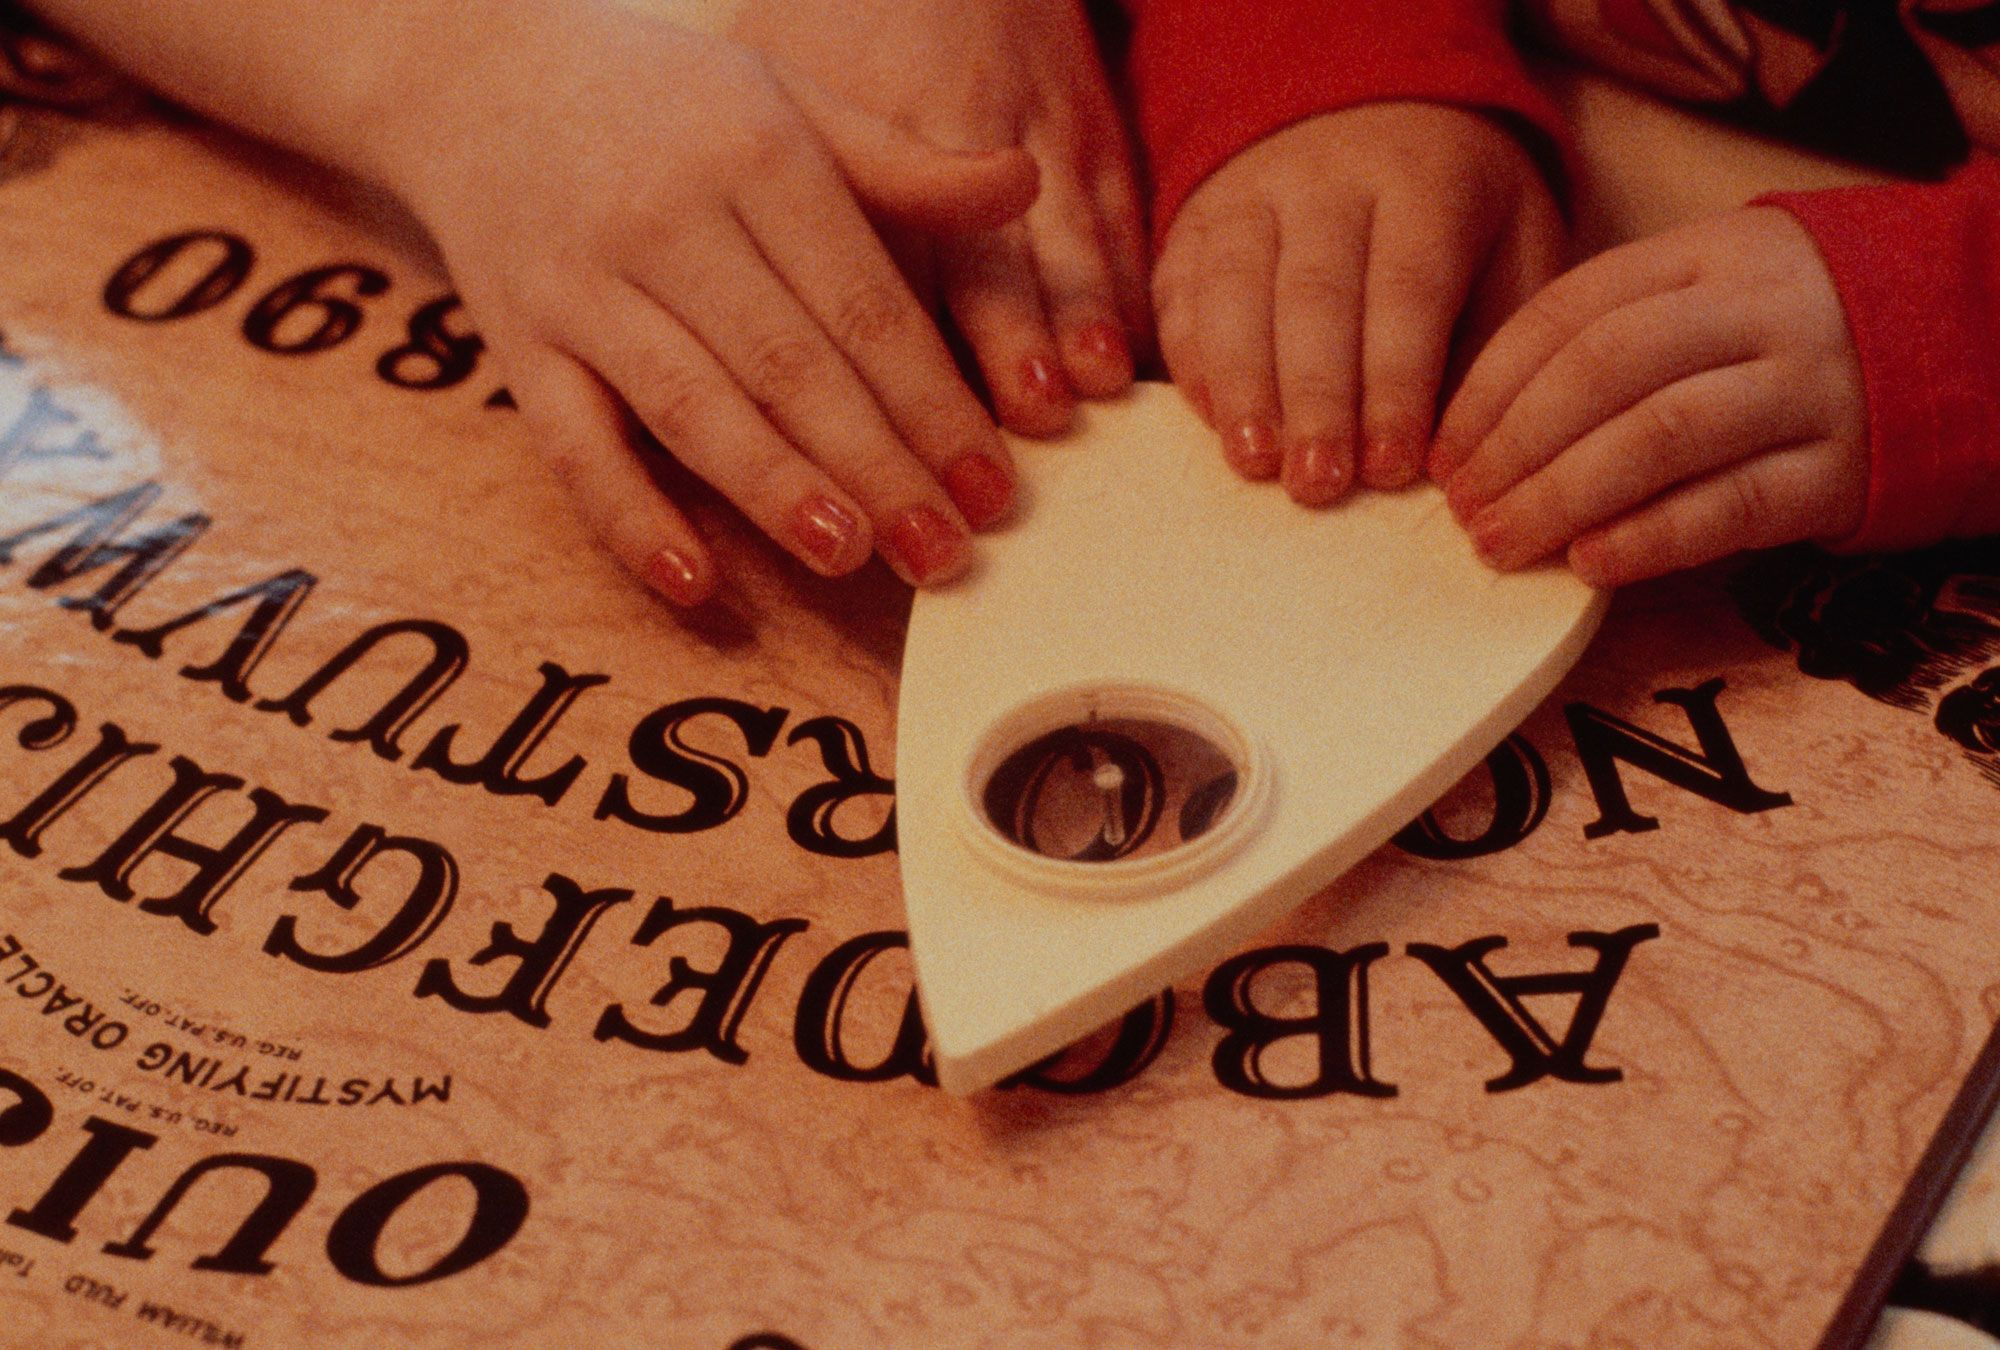 Real-Life Ouija Board Stories - Creepiest Ouija Experiences